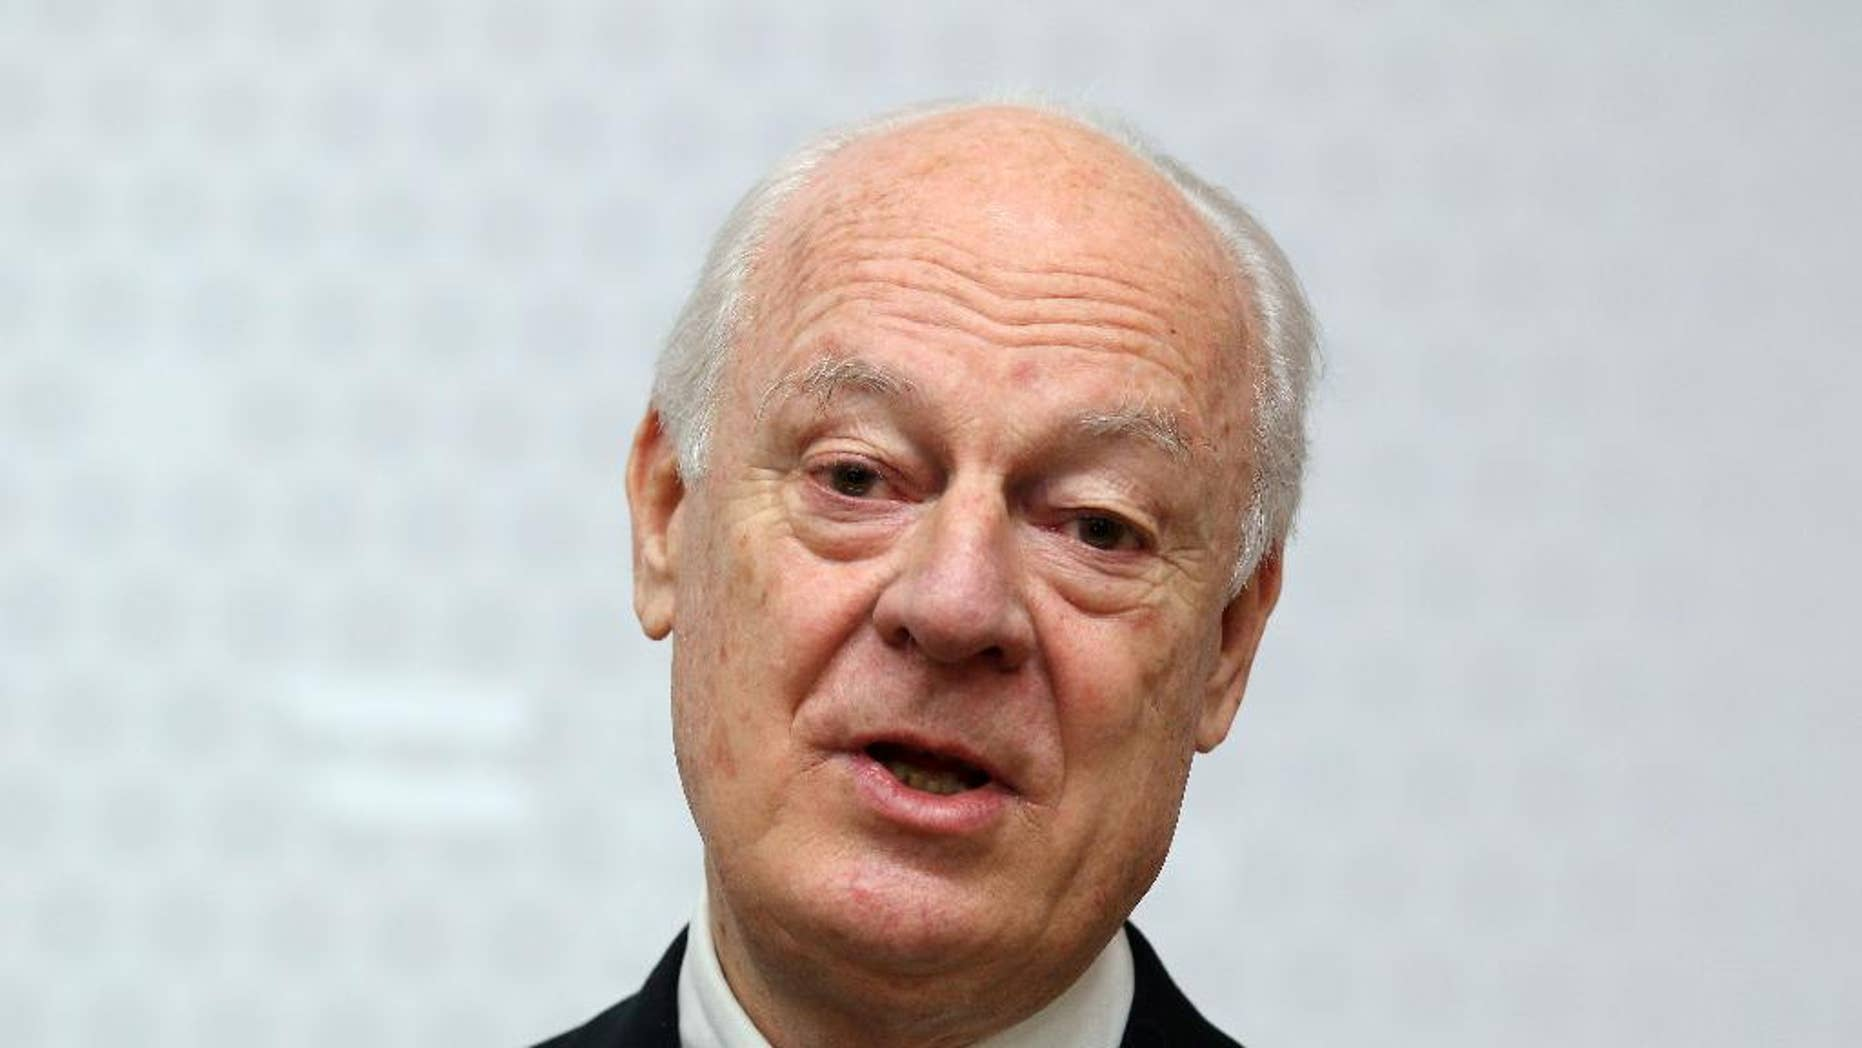 """FILE - In this Feb. 13, 2015, file photo, UN Special Envoy for Syria Staffan de Mistura informs the media after talks with Austrian Foreign Minister Sebastian Kurz at the foreign ministry in Vienna, Austria. The United Nations envoy to Syria said Tuesday, Feb. 17, he has received a commitment from the Syrian government to suspend airstrikes and artillery shelling on the city of Aleppo for six weeks to allow a proposed U.N. plan to """"freeze"""" hostilities in the country's largest city to be tested. (AP Photo/Ronald Zak, File)"""